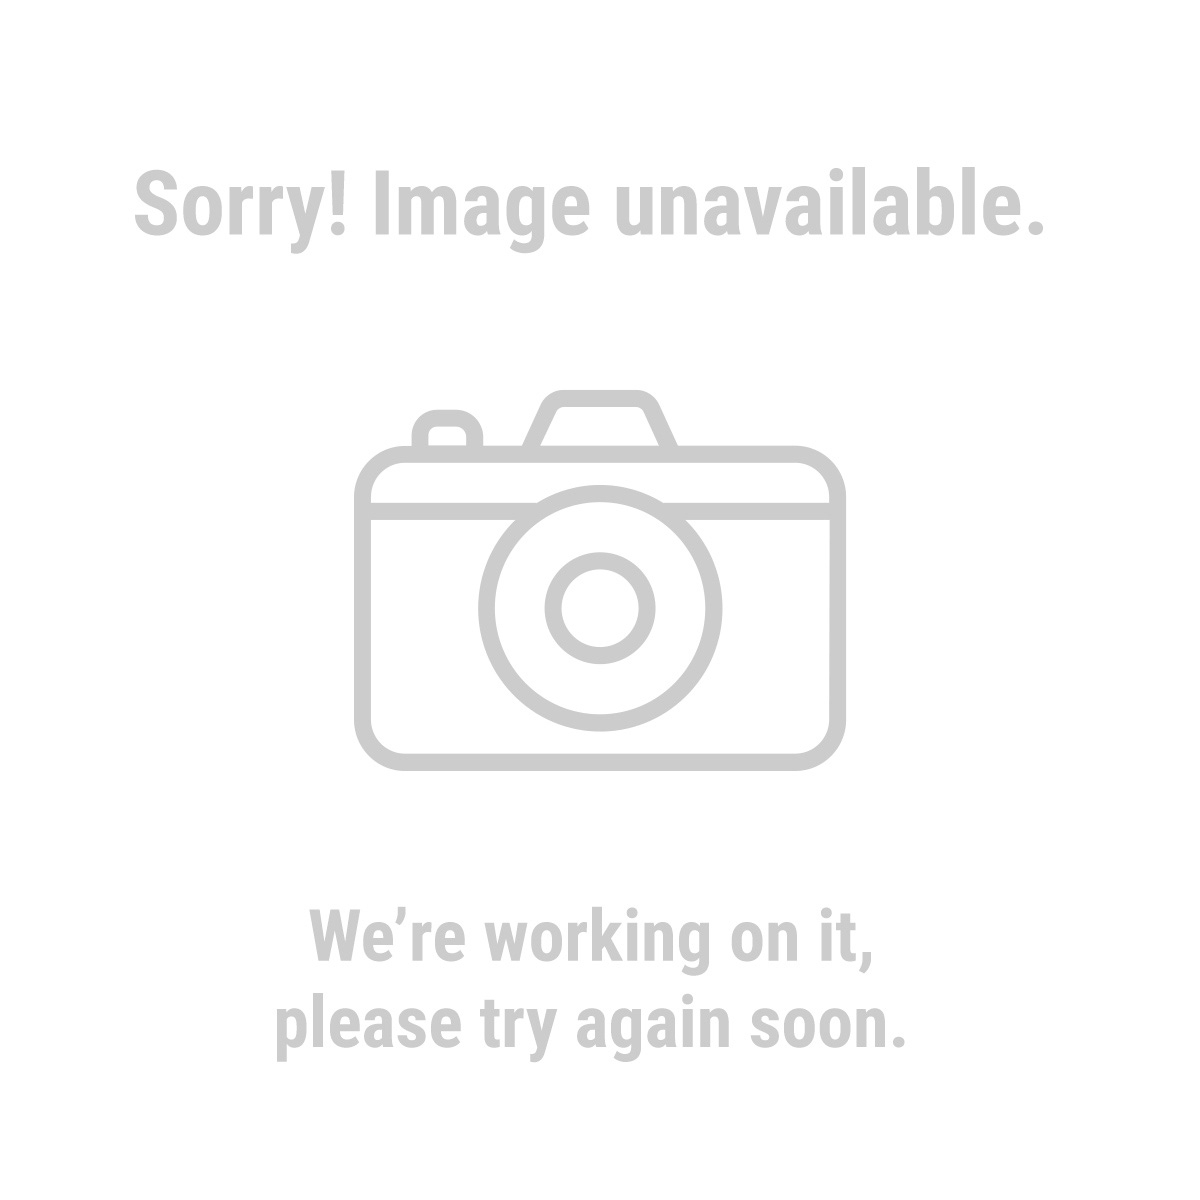 Haul-Master 66983 500 Lb. Capacity Deluxe Cargo Carrier